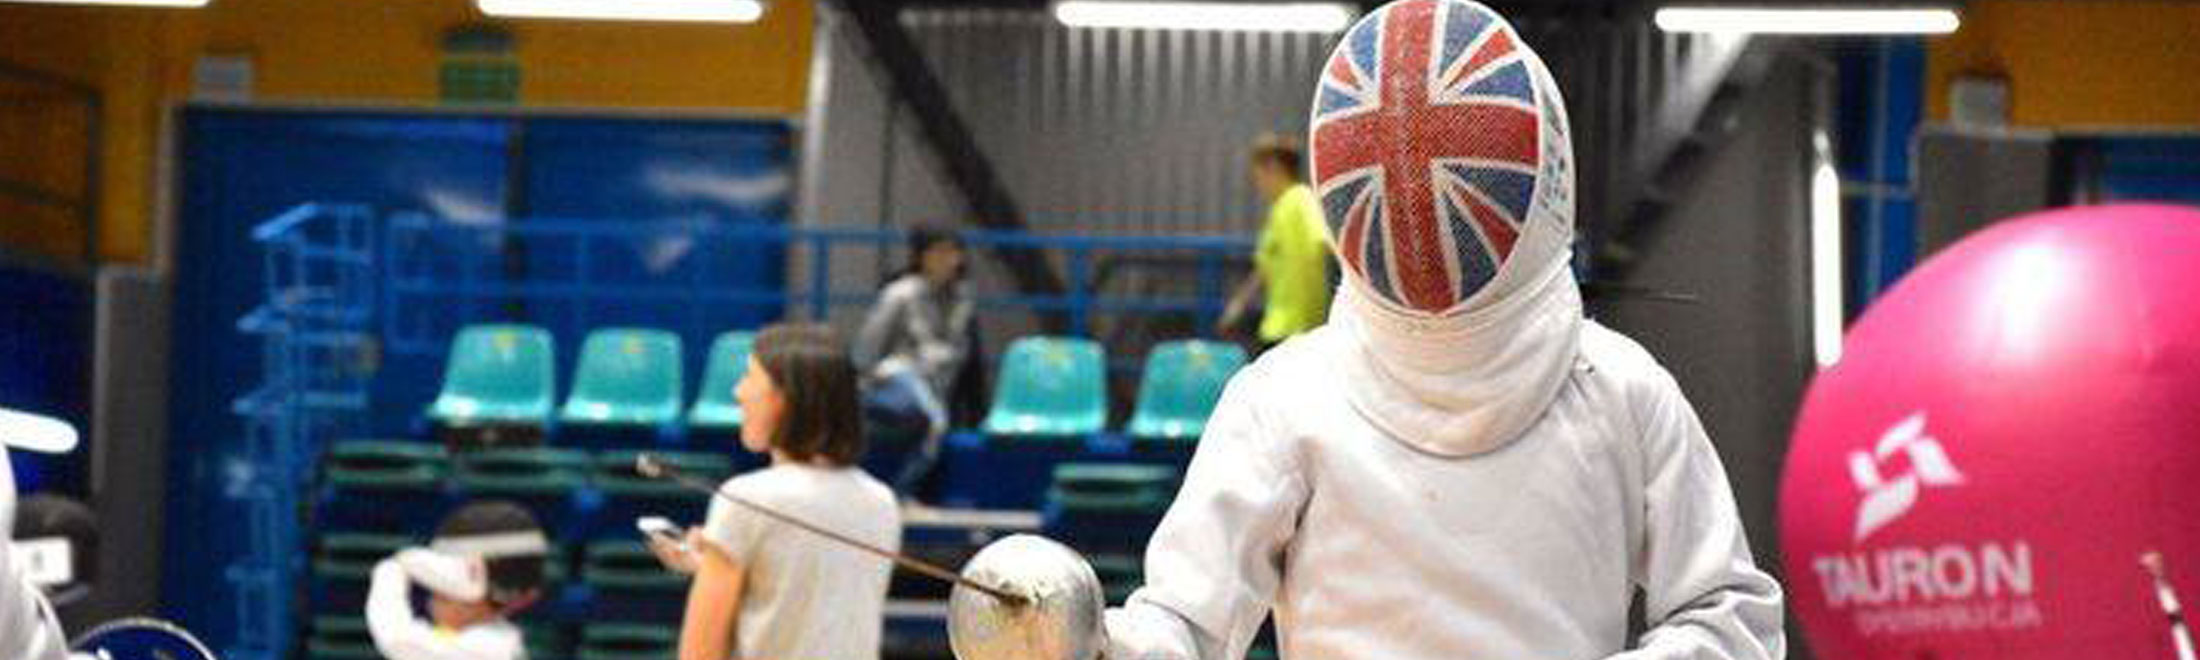 team GB dream fencing